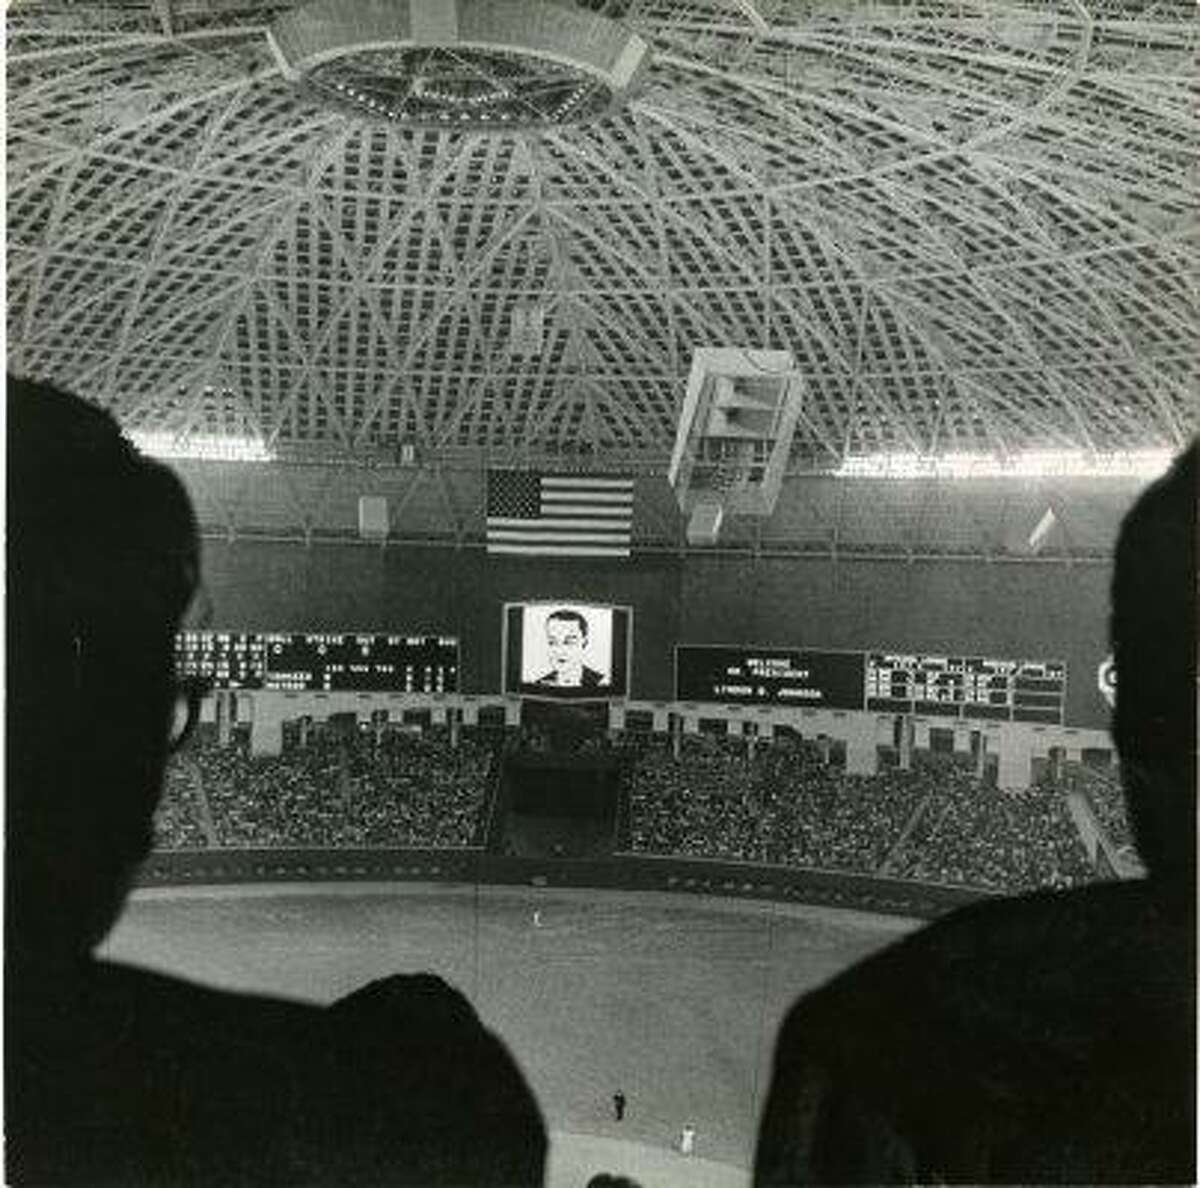 The Astrodome scoreboard lit up in 1965 to welcome President Lyndon Baines Johnson to the world's first indoor baseball game.